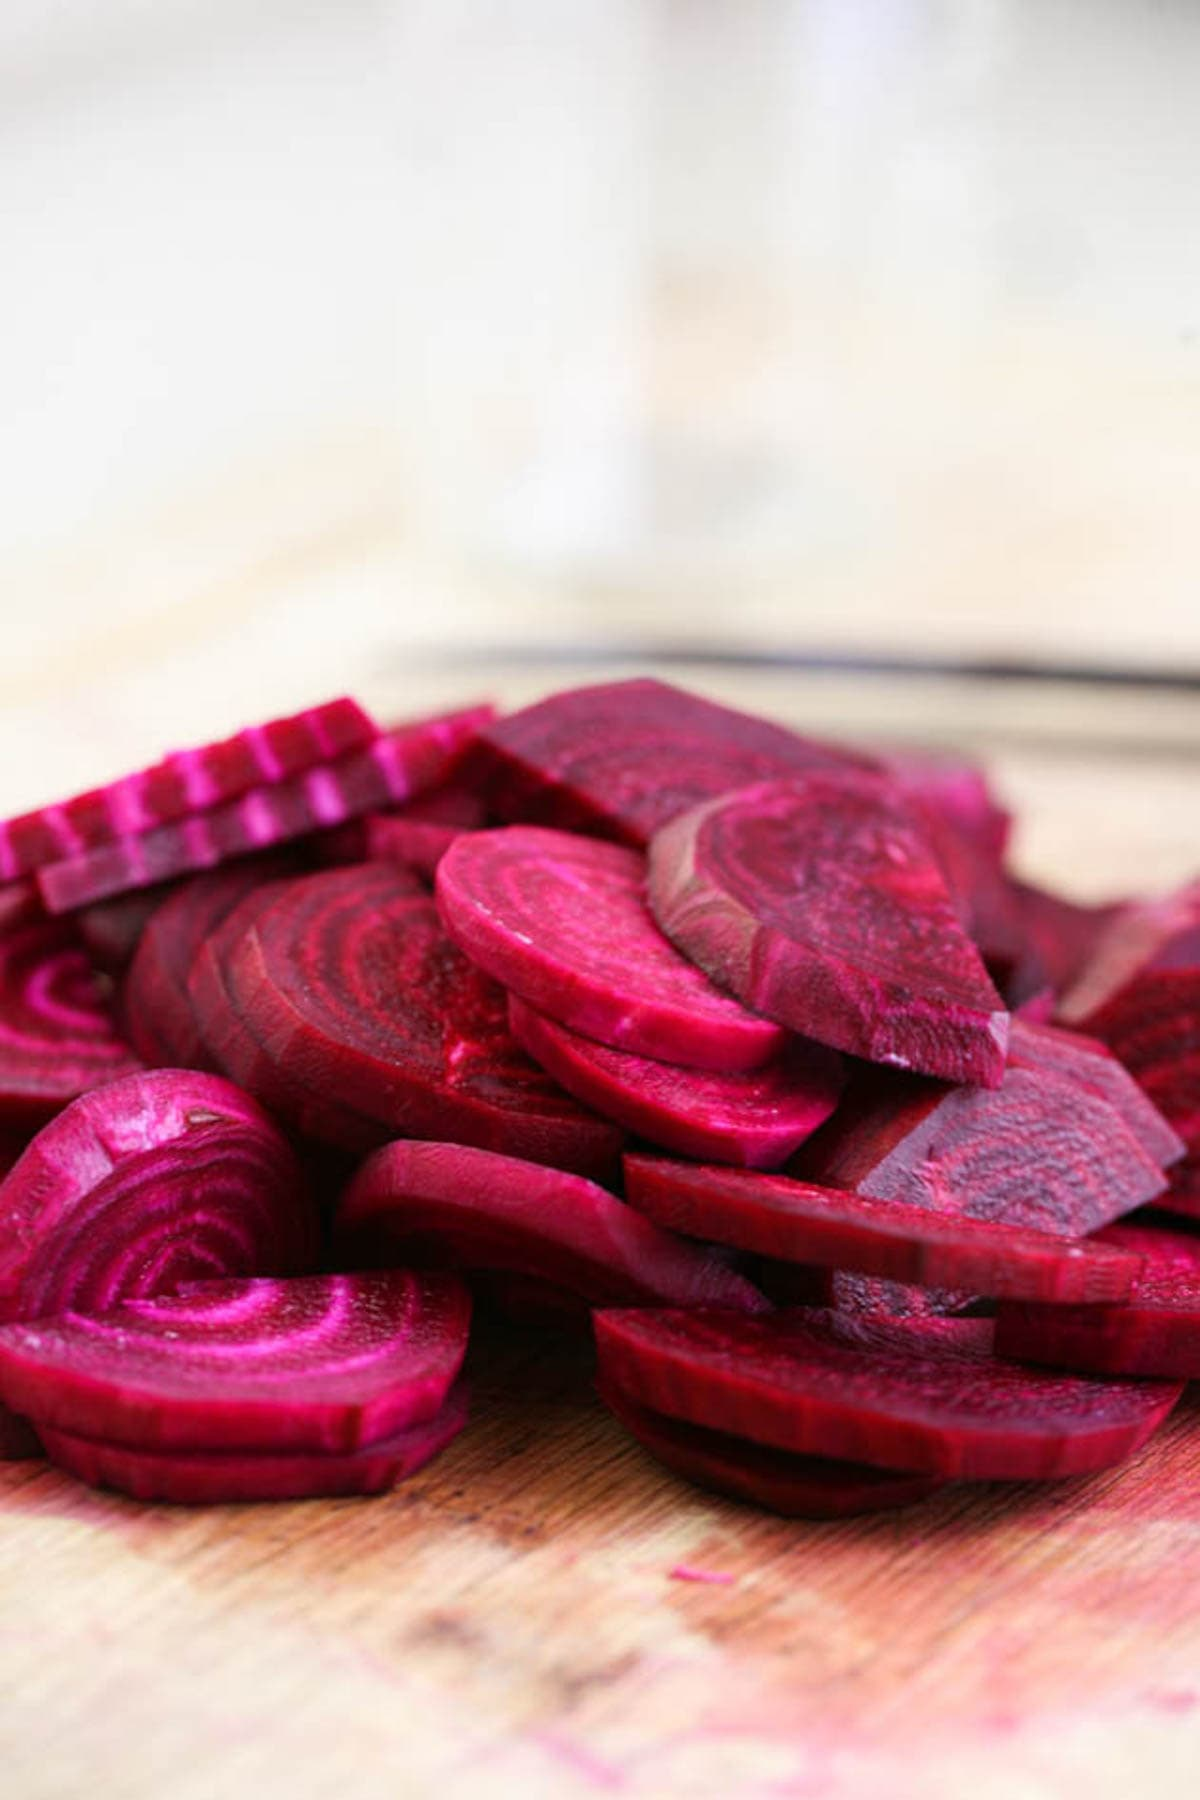 Slicing the beets